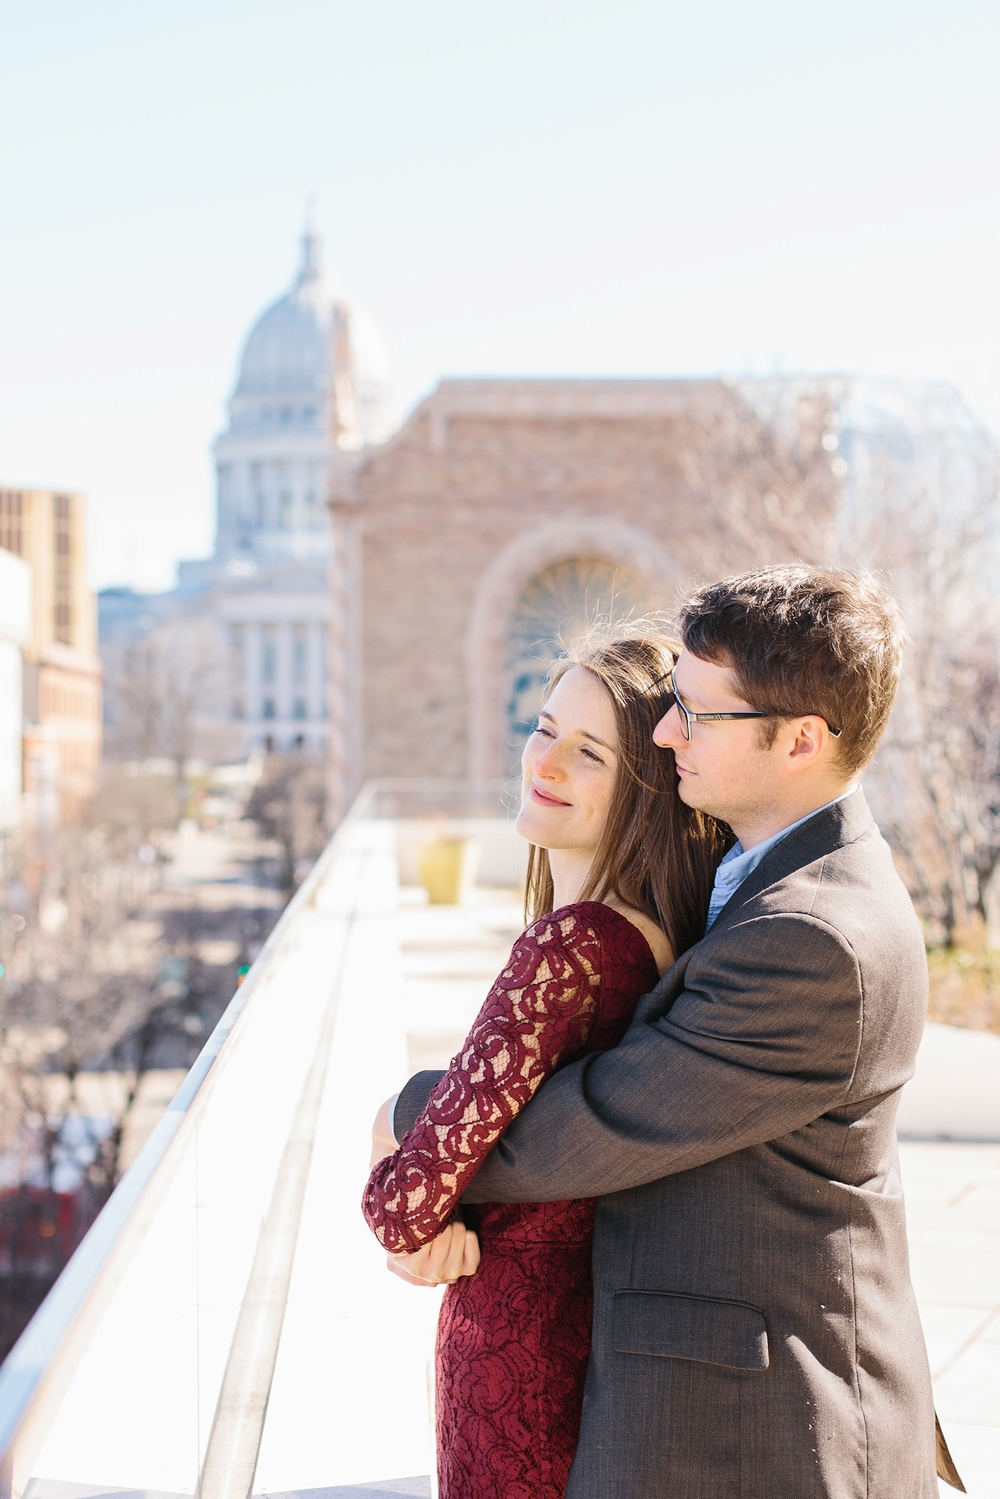 ClassicDowntownMadisonEngagementSession_0019.jpg